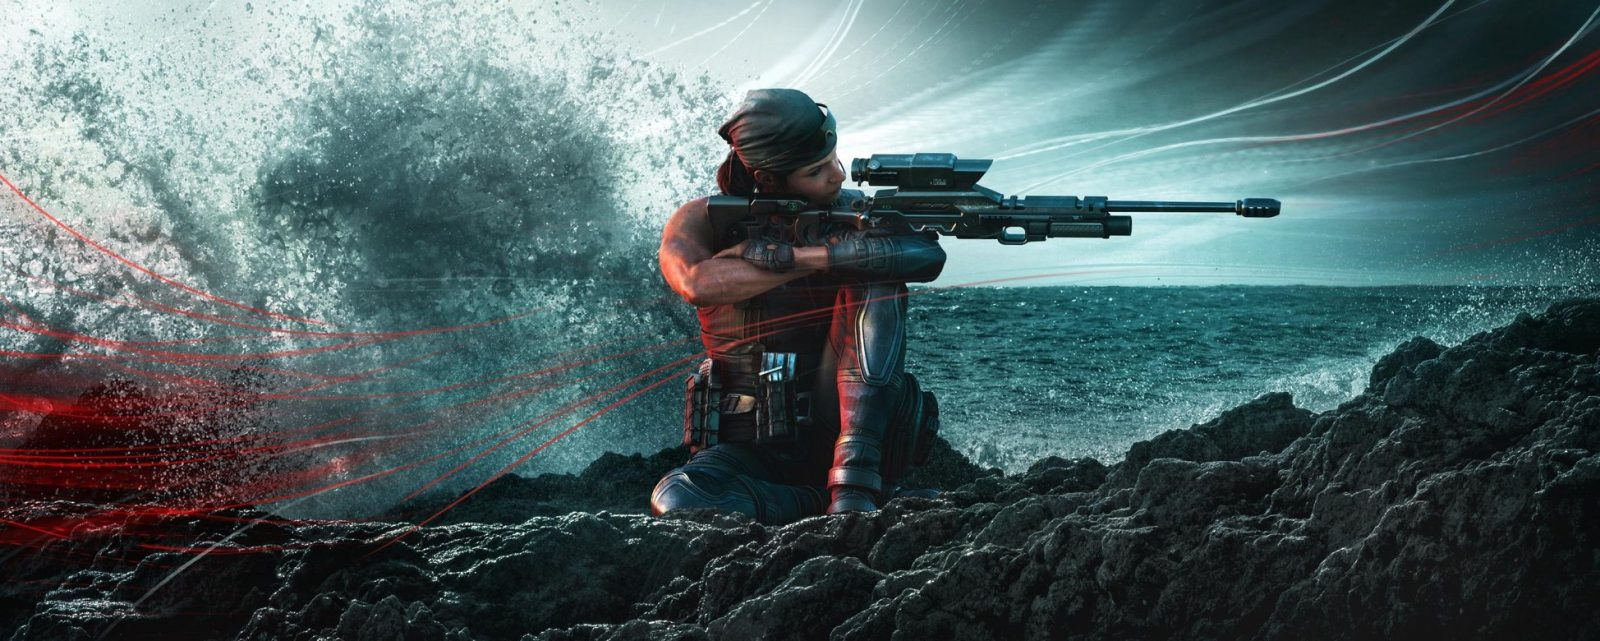 Rainbow Six Siege Operation Shifting Tides: 5 tips for playing the TTS